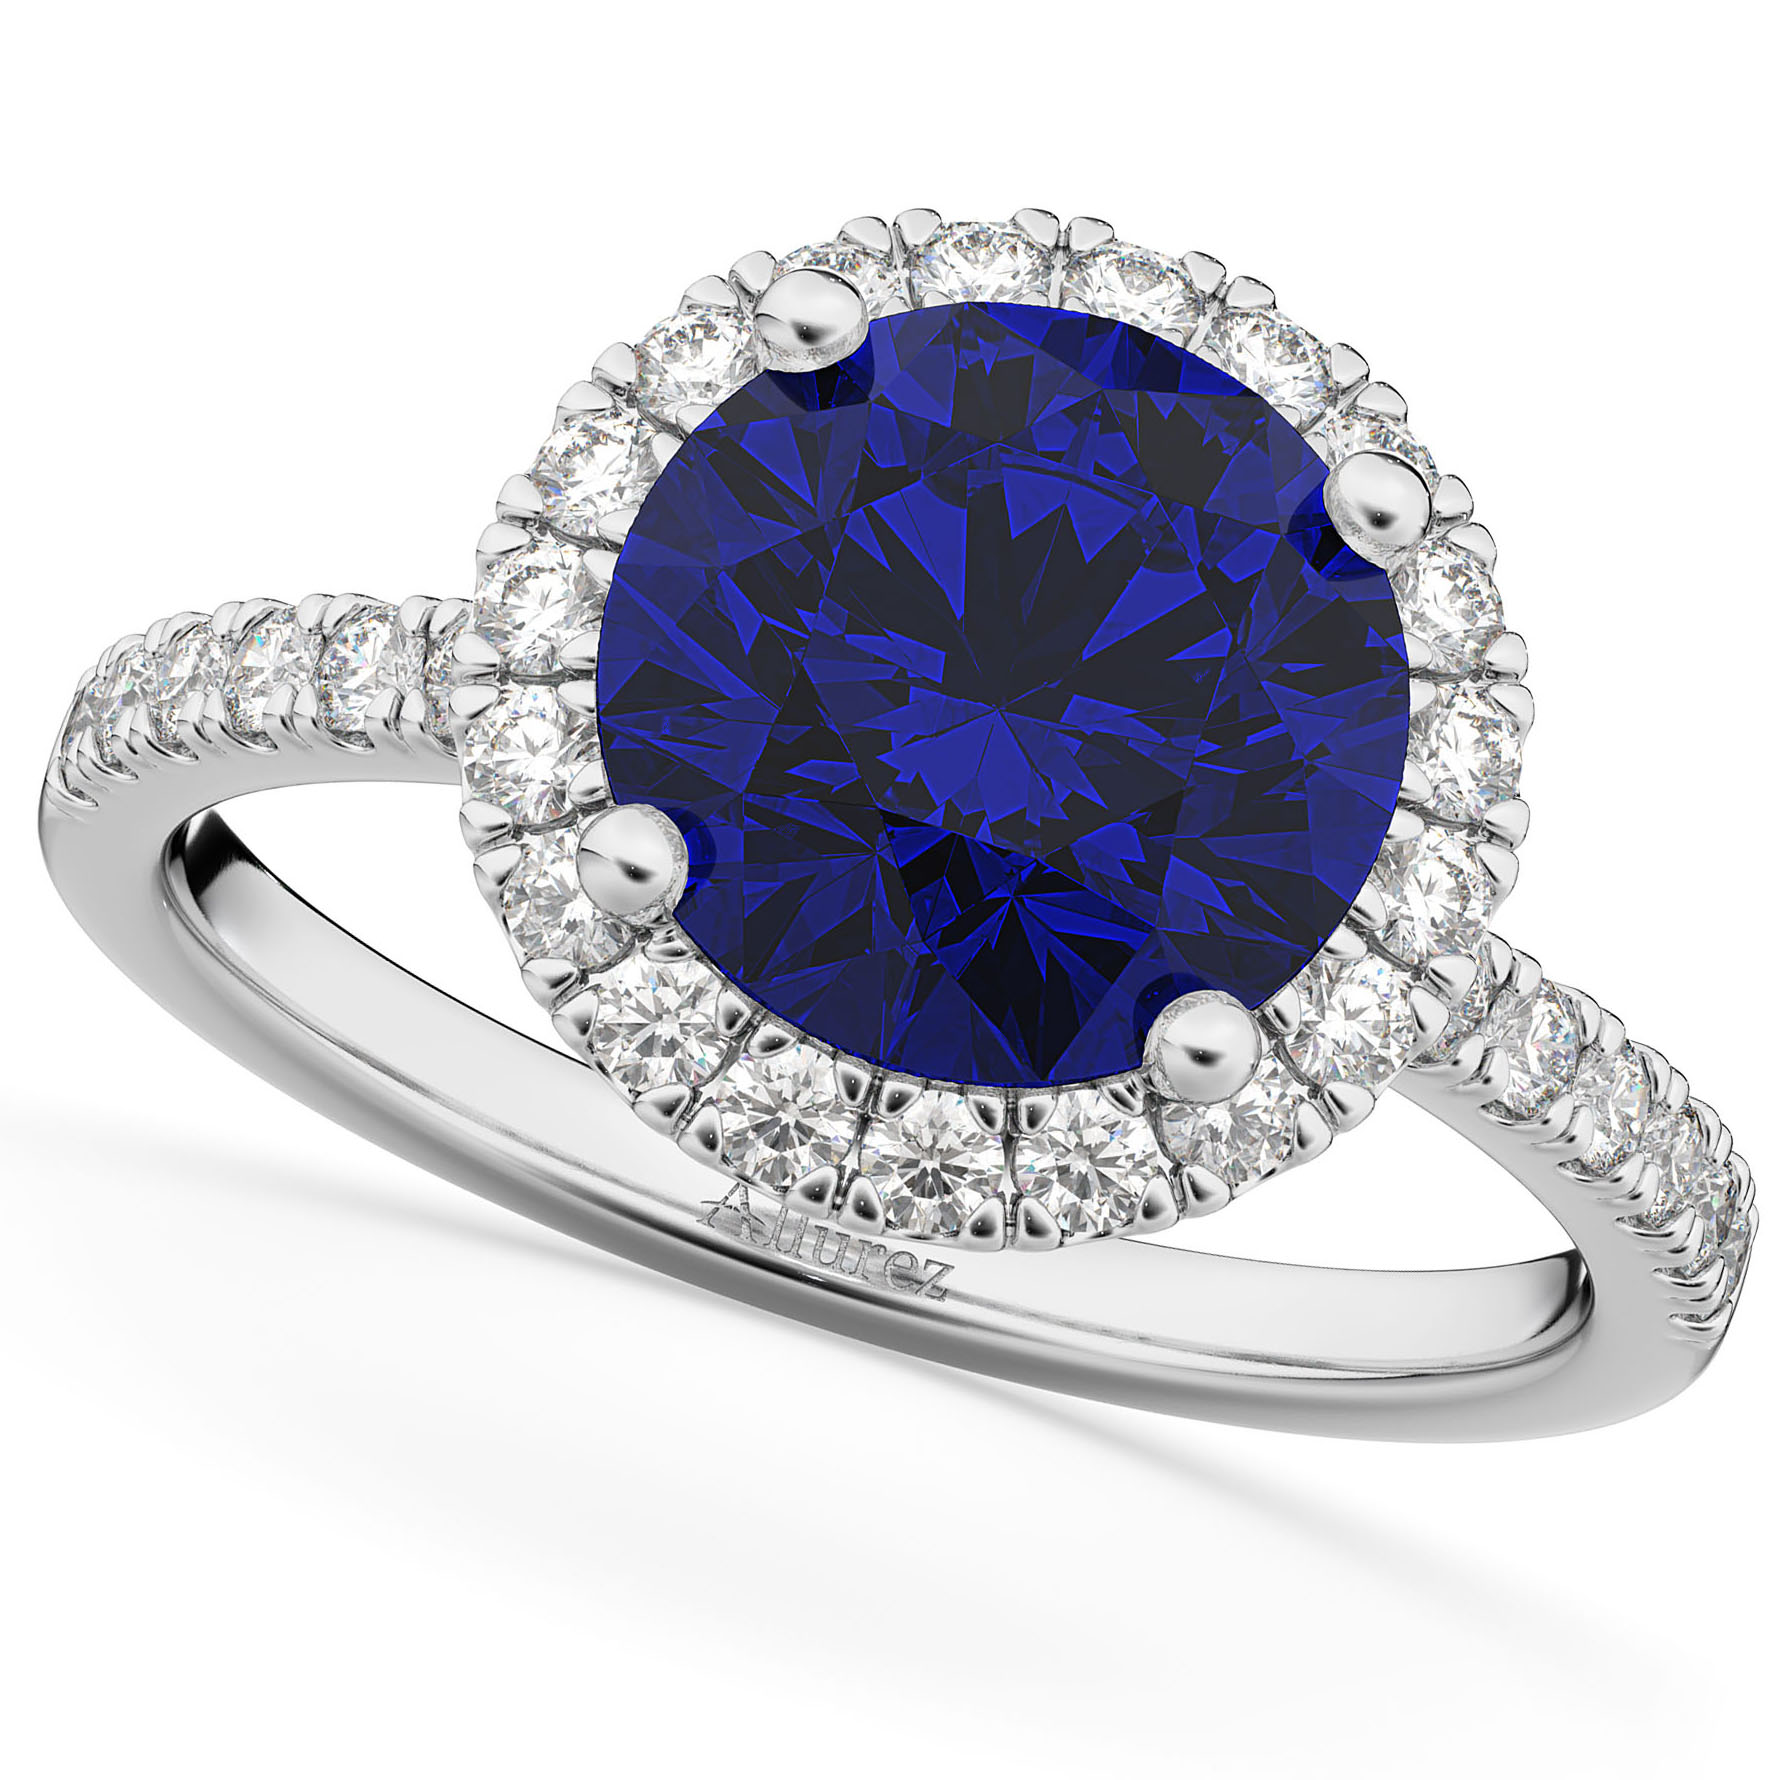 Halo Blue Sapphire & Diamond Engagement Ring 14K White Gold 2.80ct